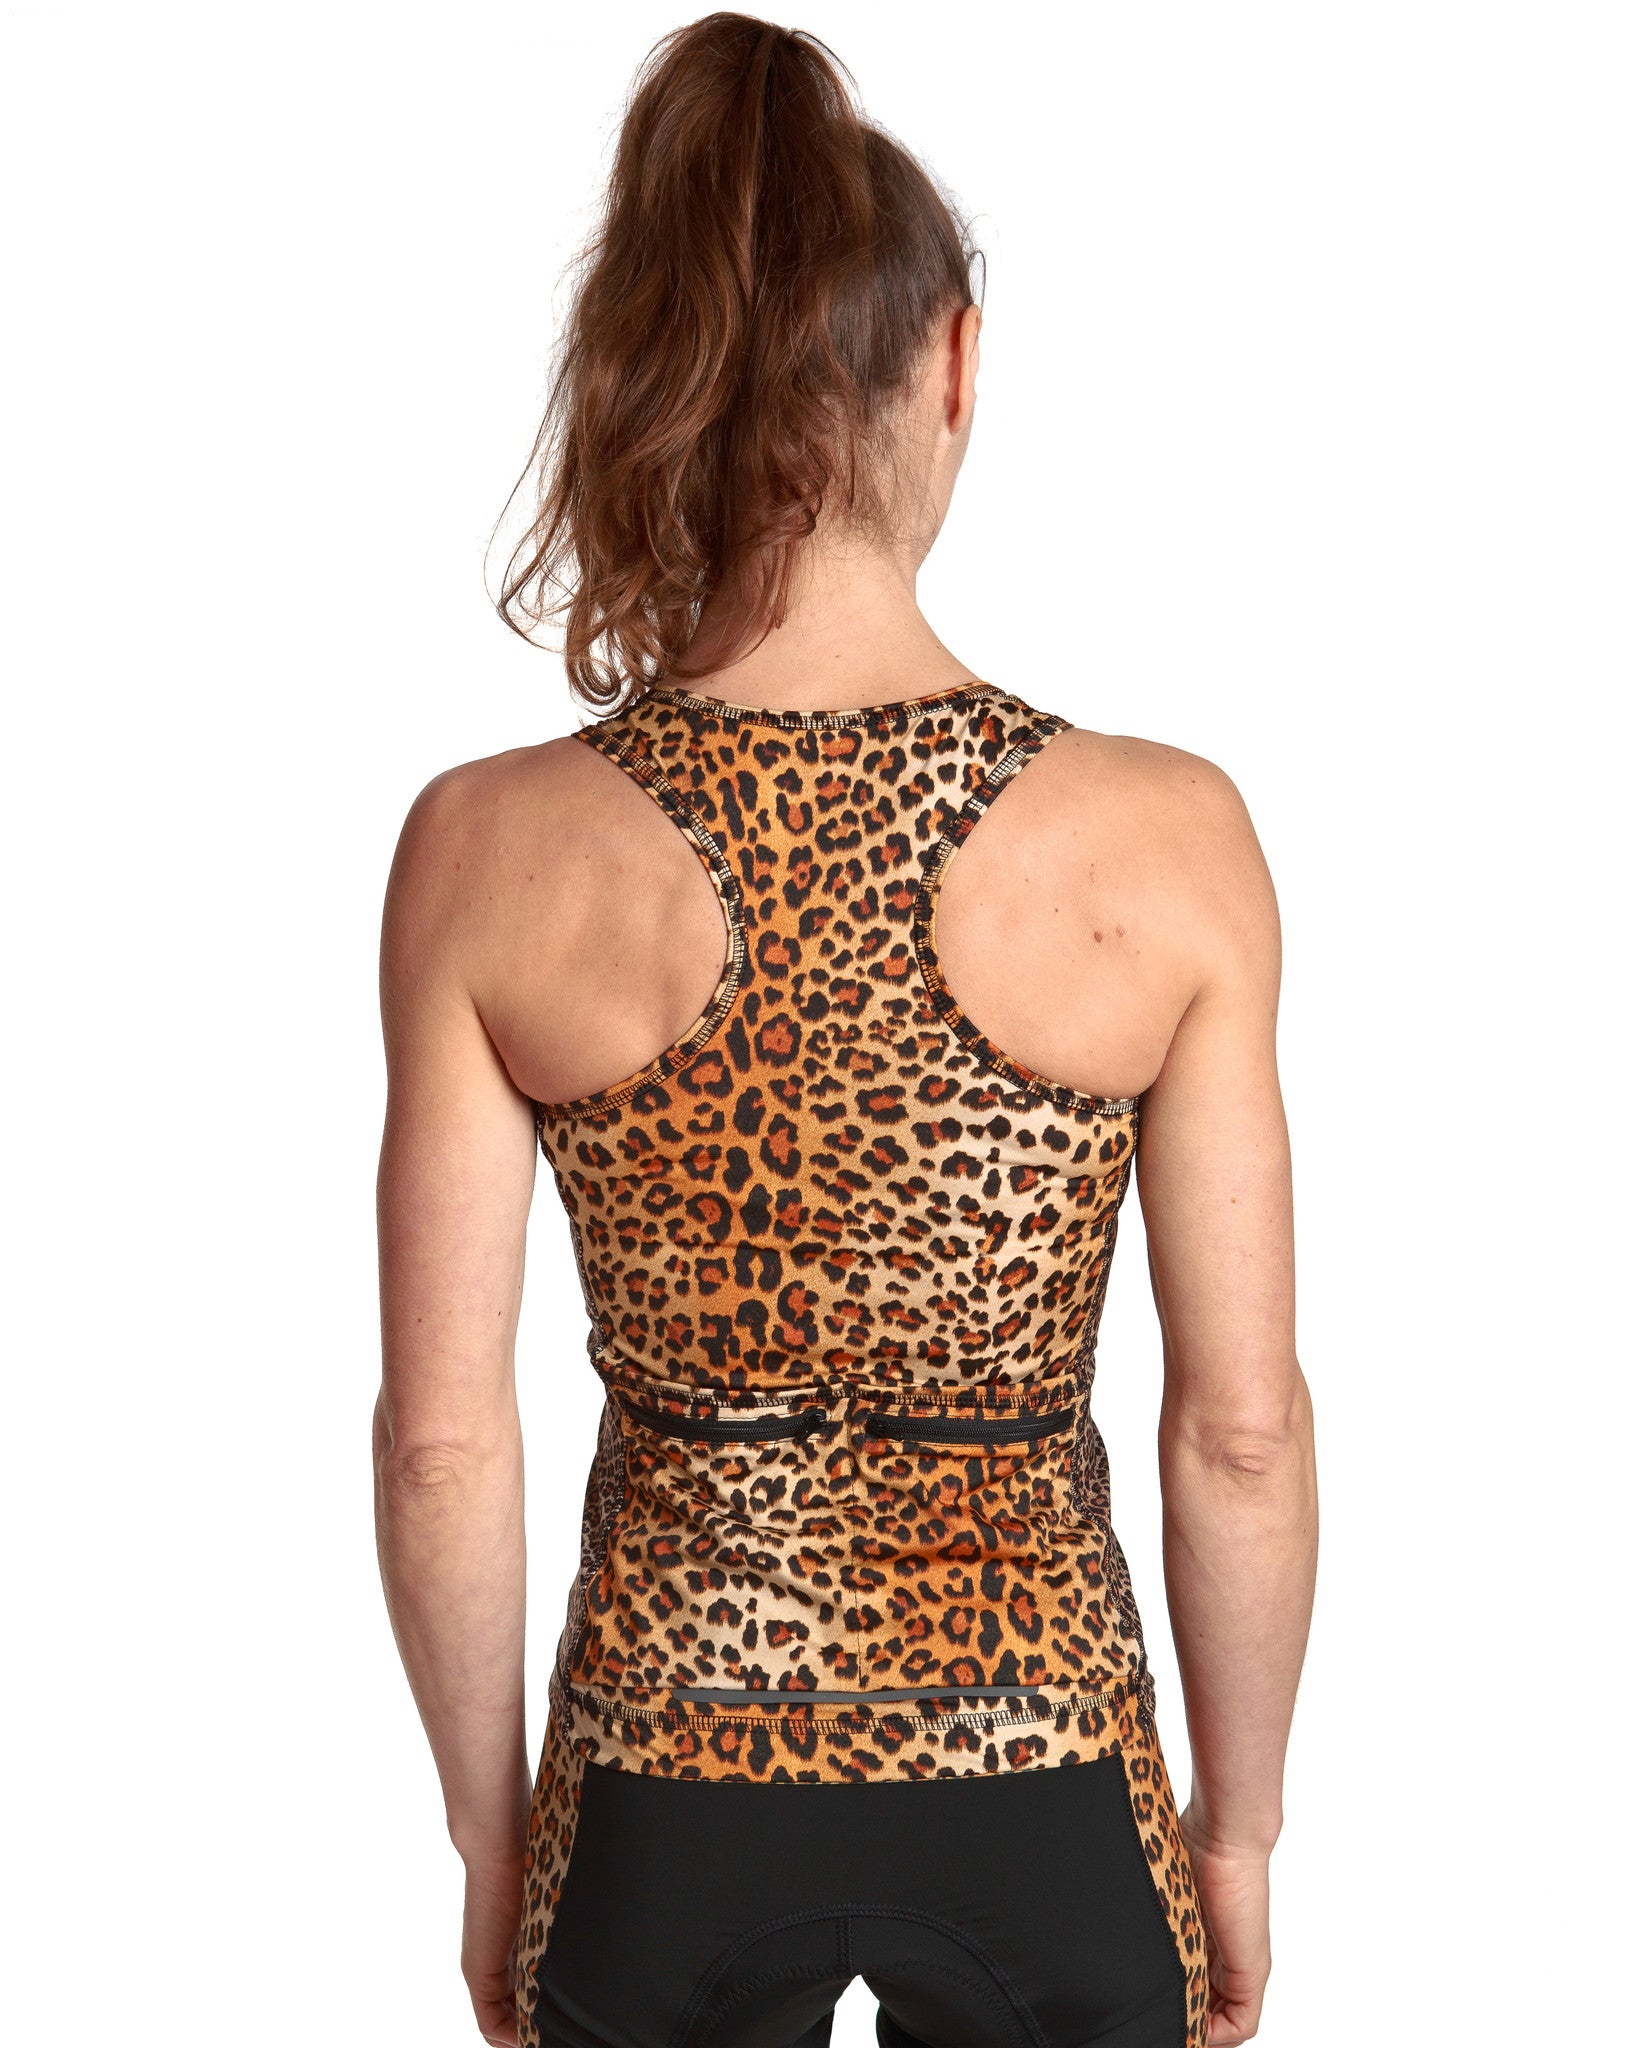 LPRD Leopard Tank Top | Back View Detail Racerback